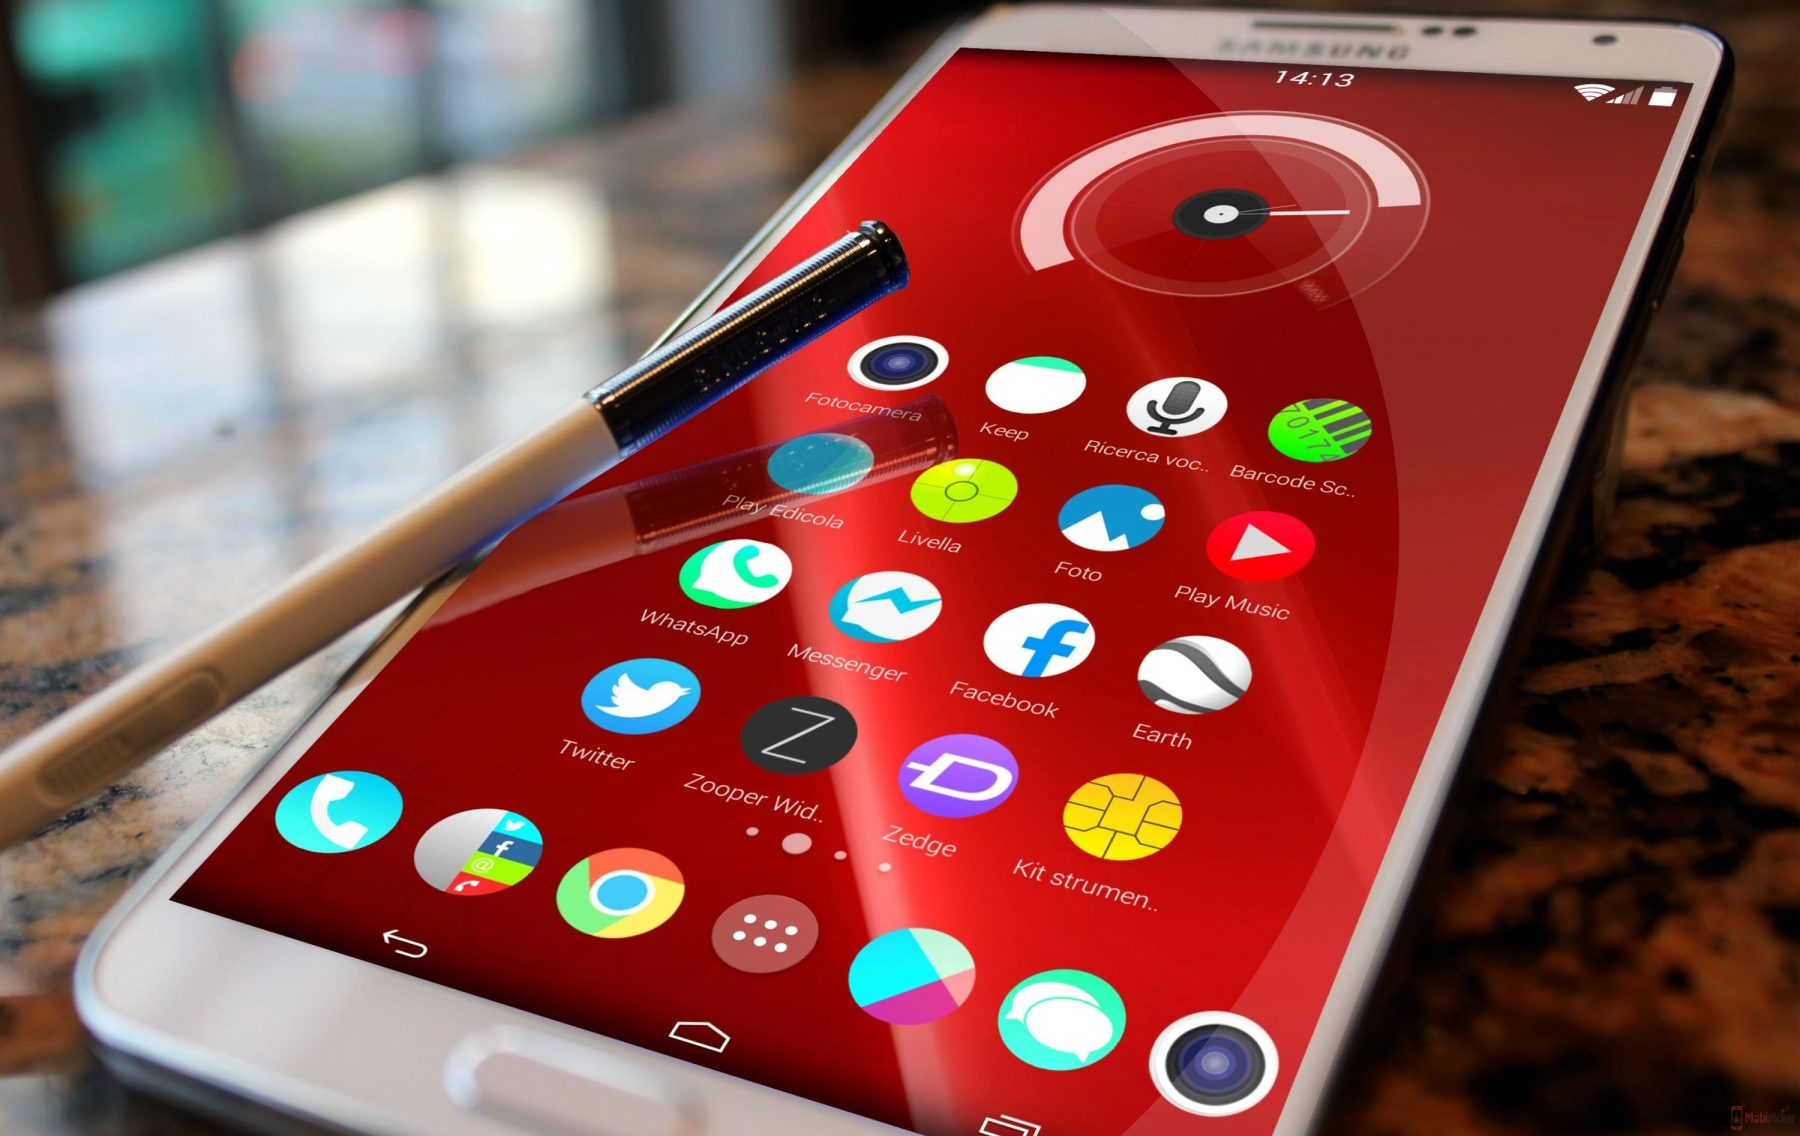 Galaxy Note 5, Samsung, phablet, images, photos